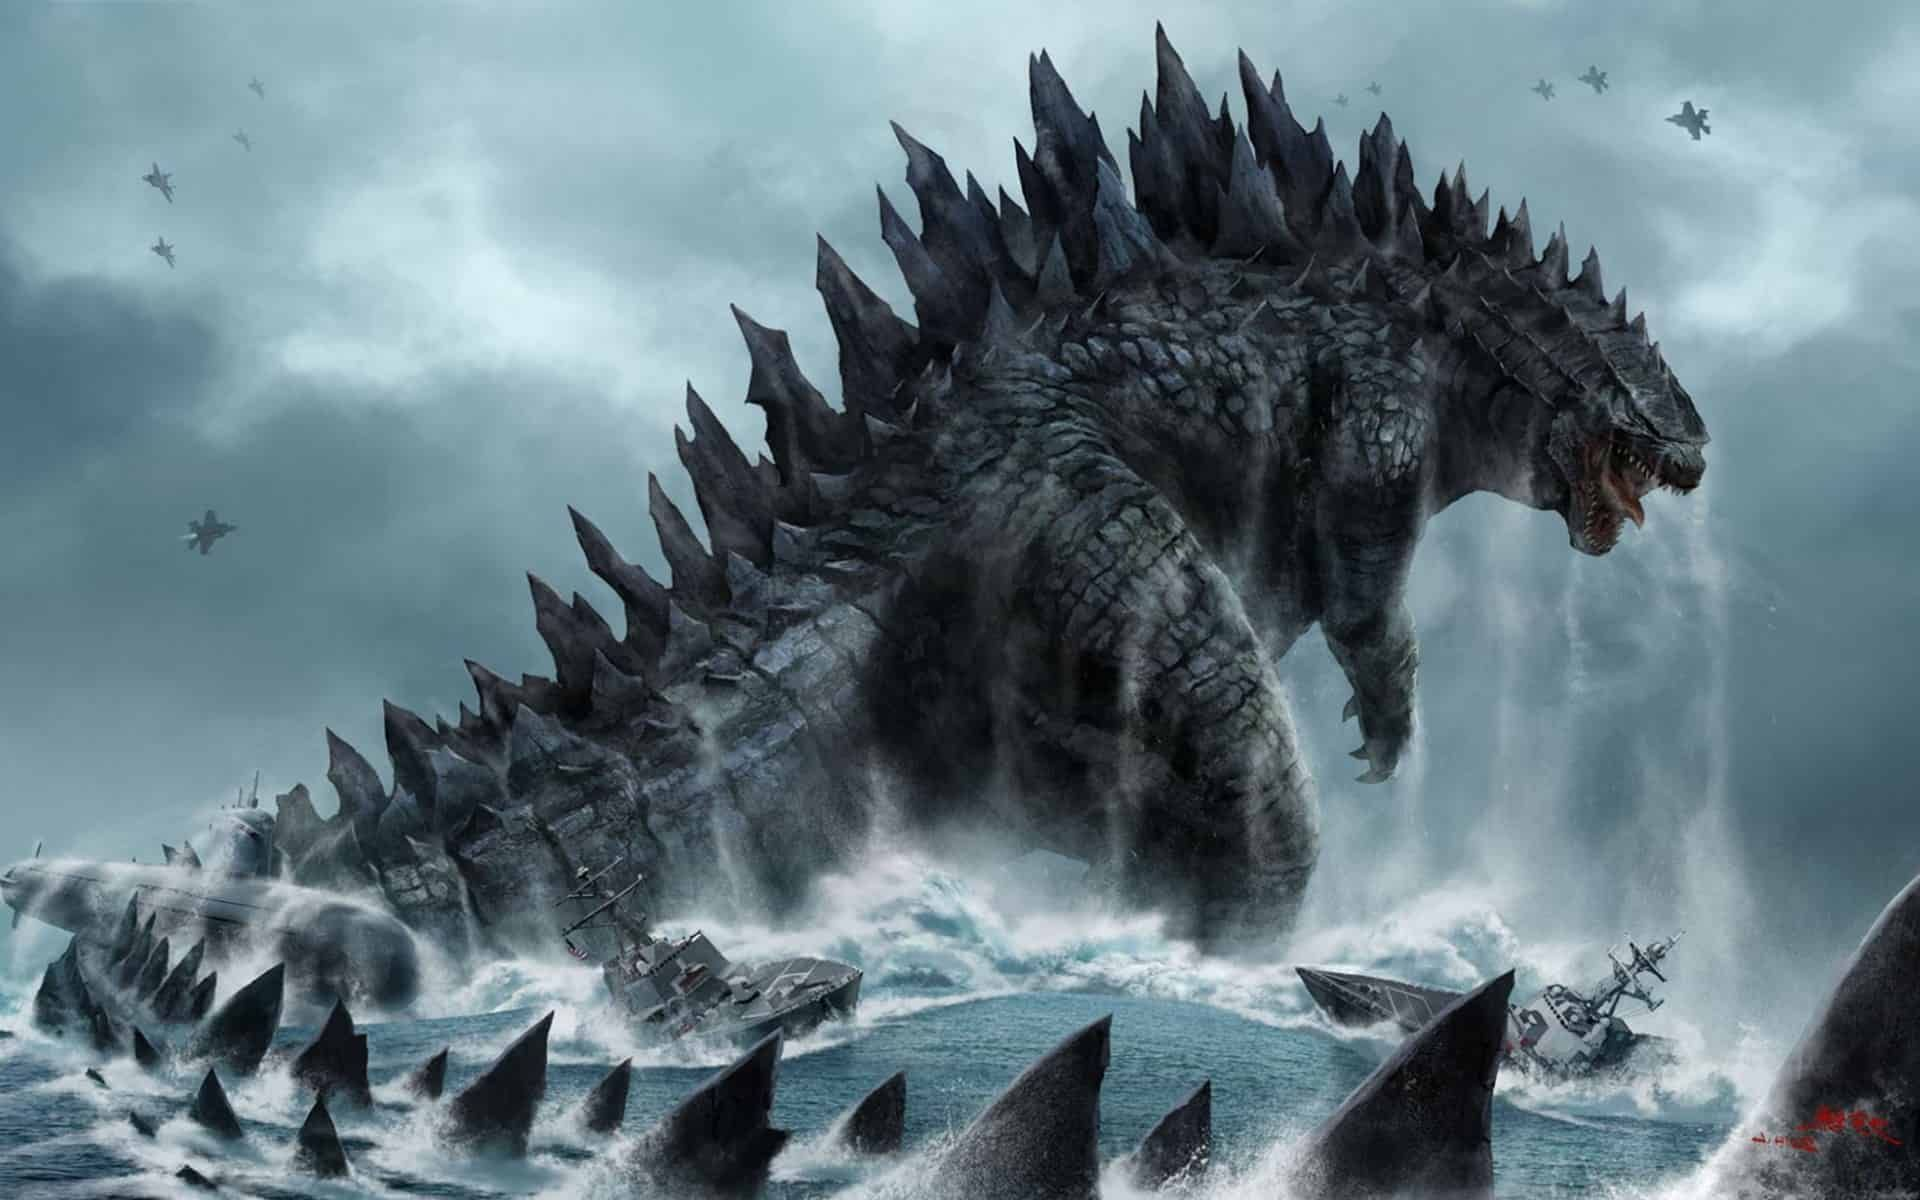 First godzilla anime film is set to release in 2017 here